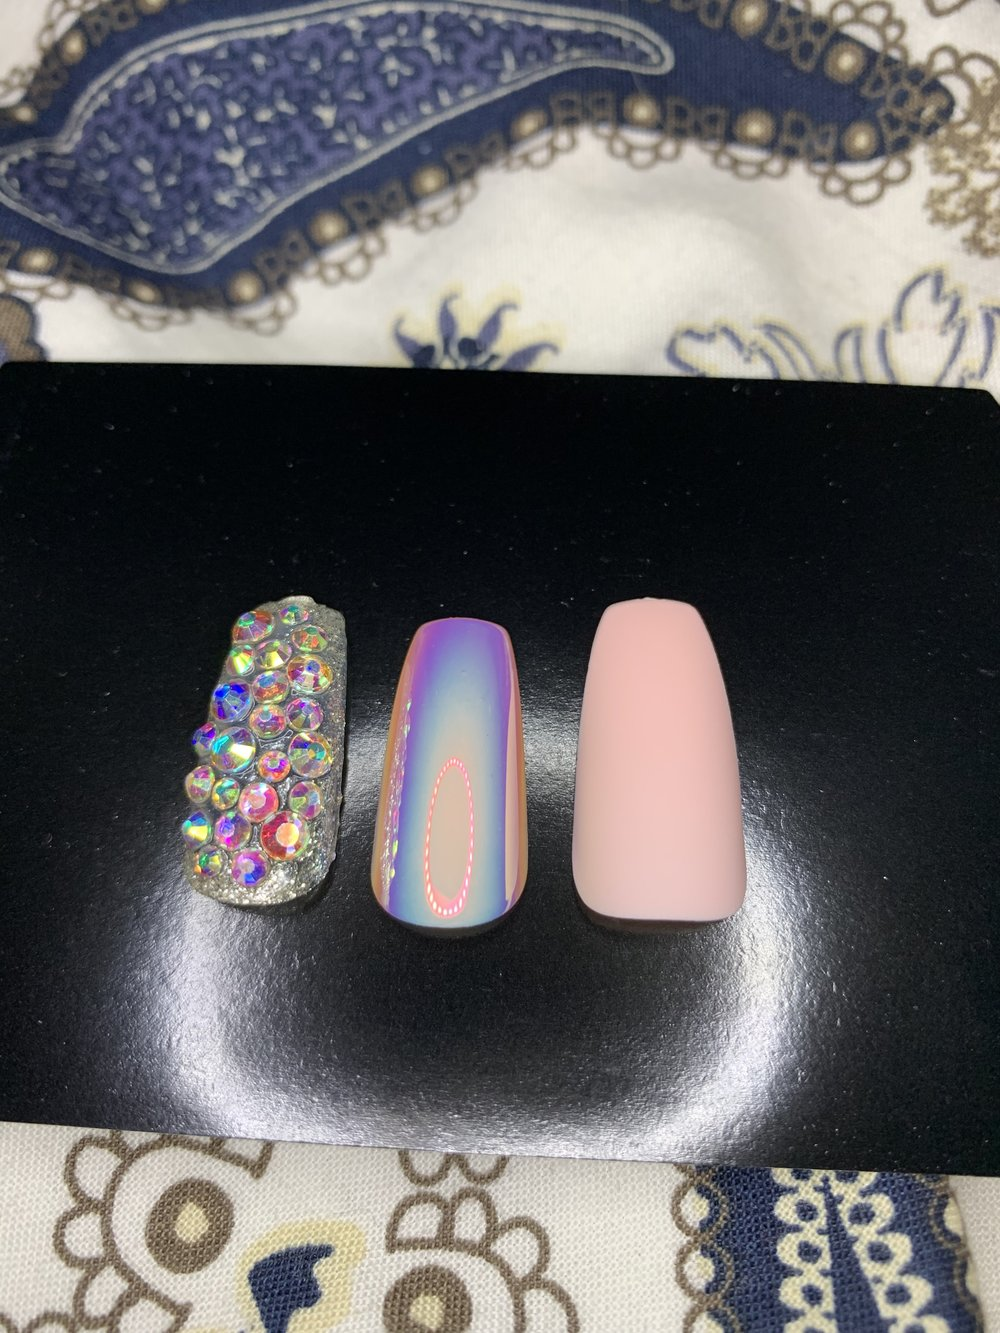 Different style nails. Note the squared off bottom on the right.